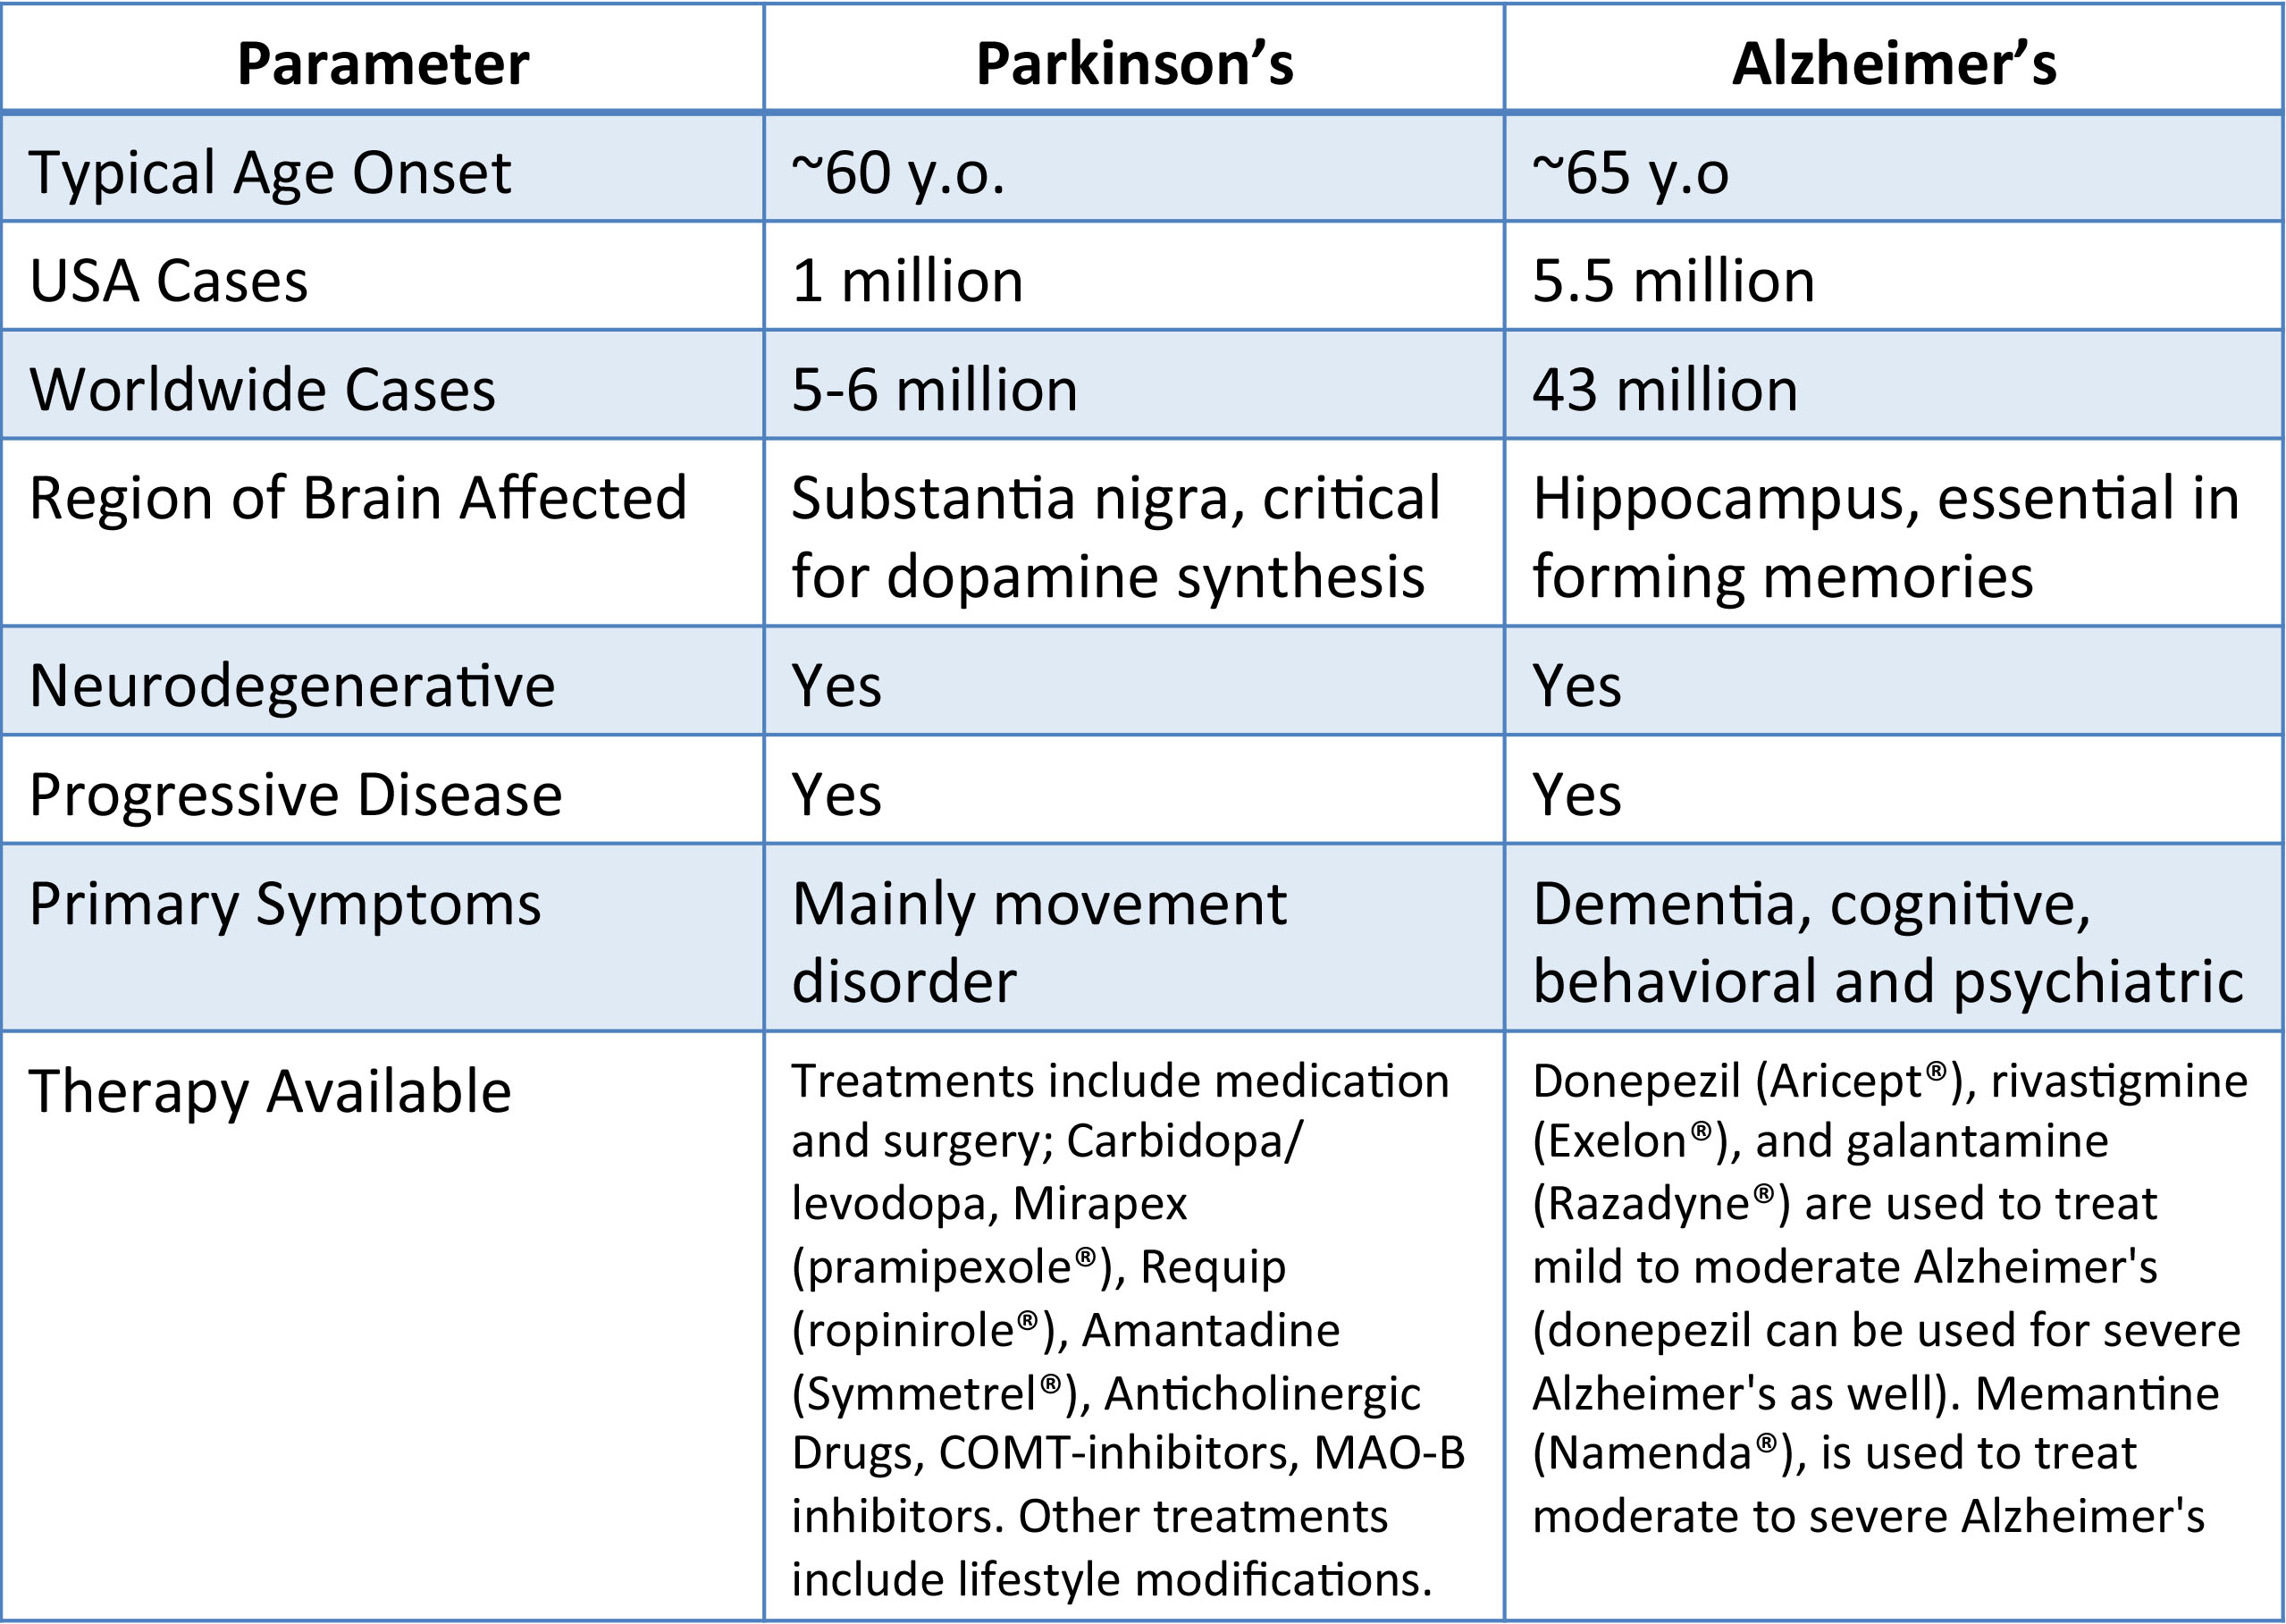 Parkinson's Disease Research Paper Essay